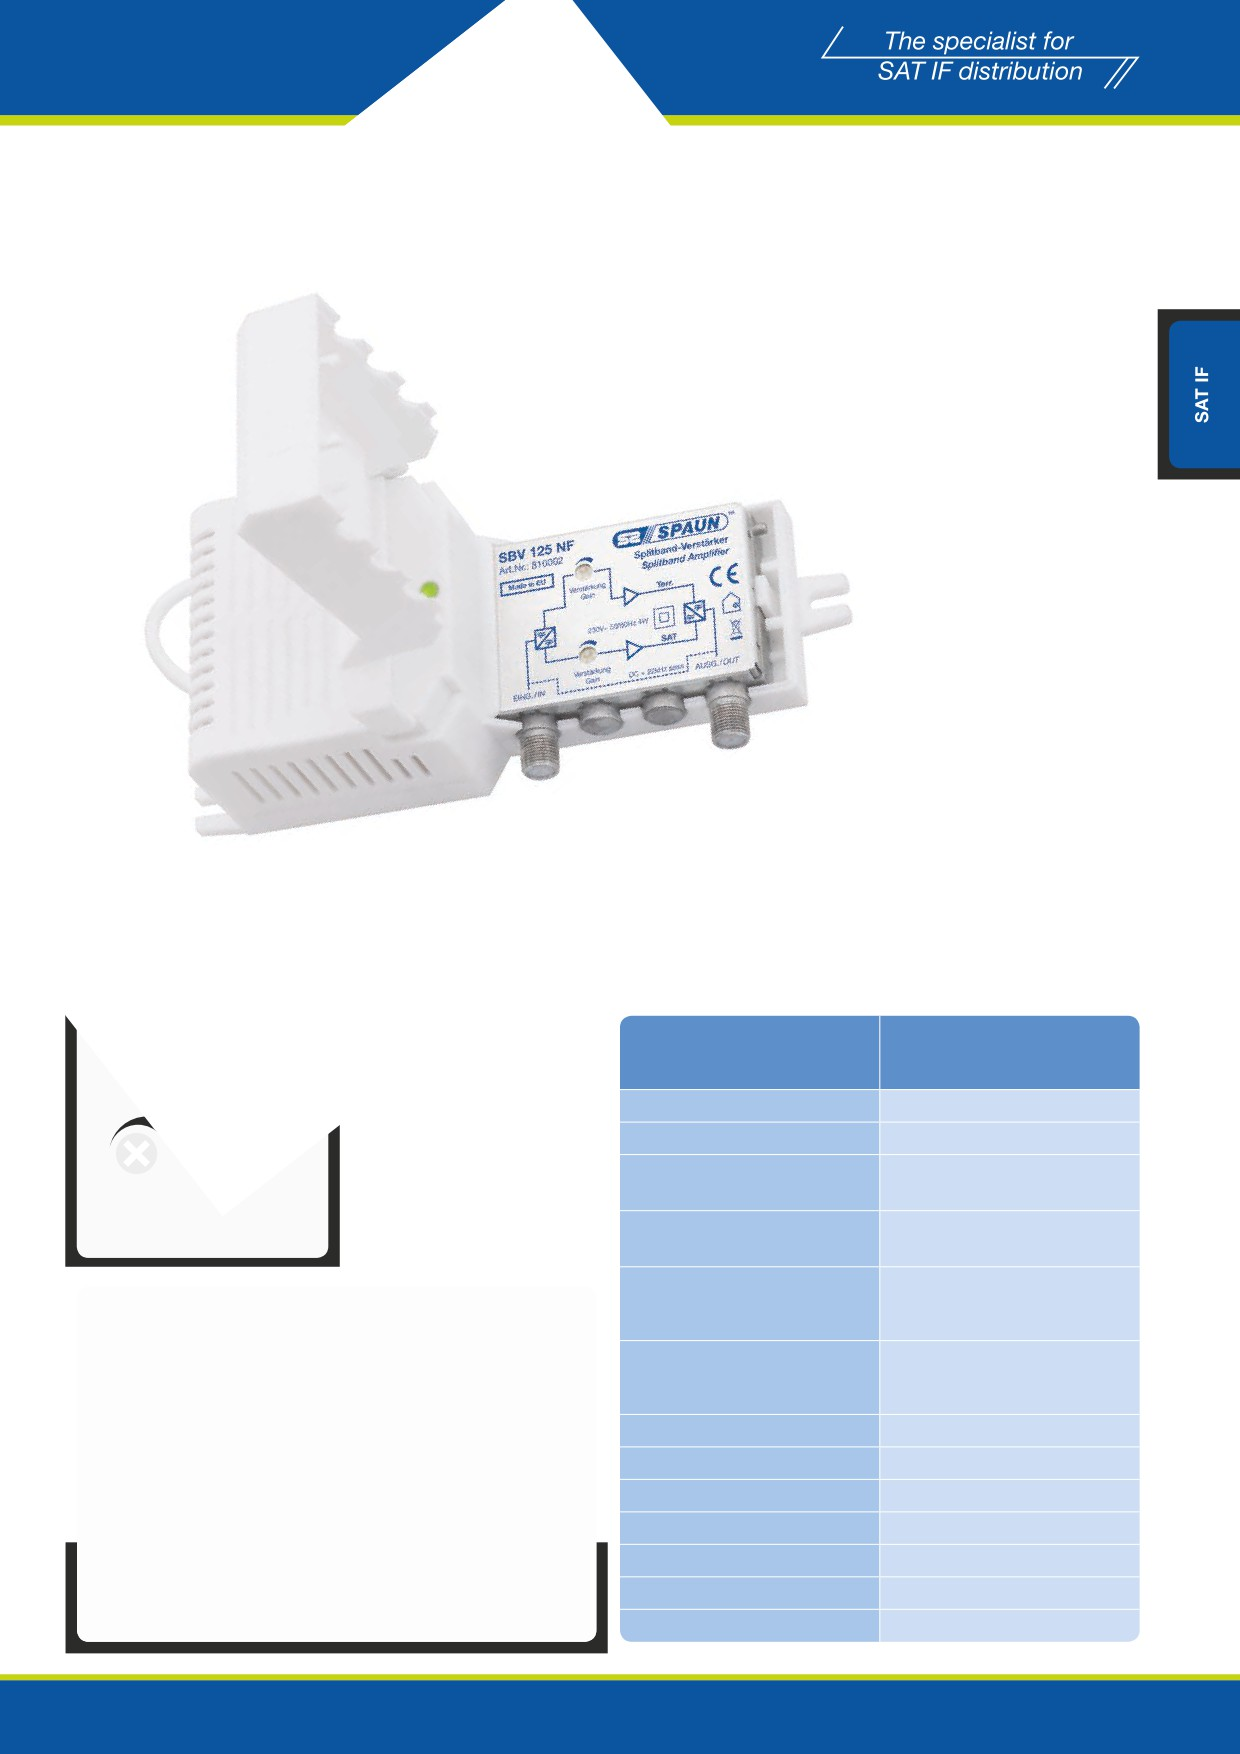 Cable Splitter Furthermore Ether Cable Splitter Diagram Likewise Rj45